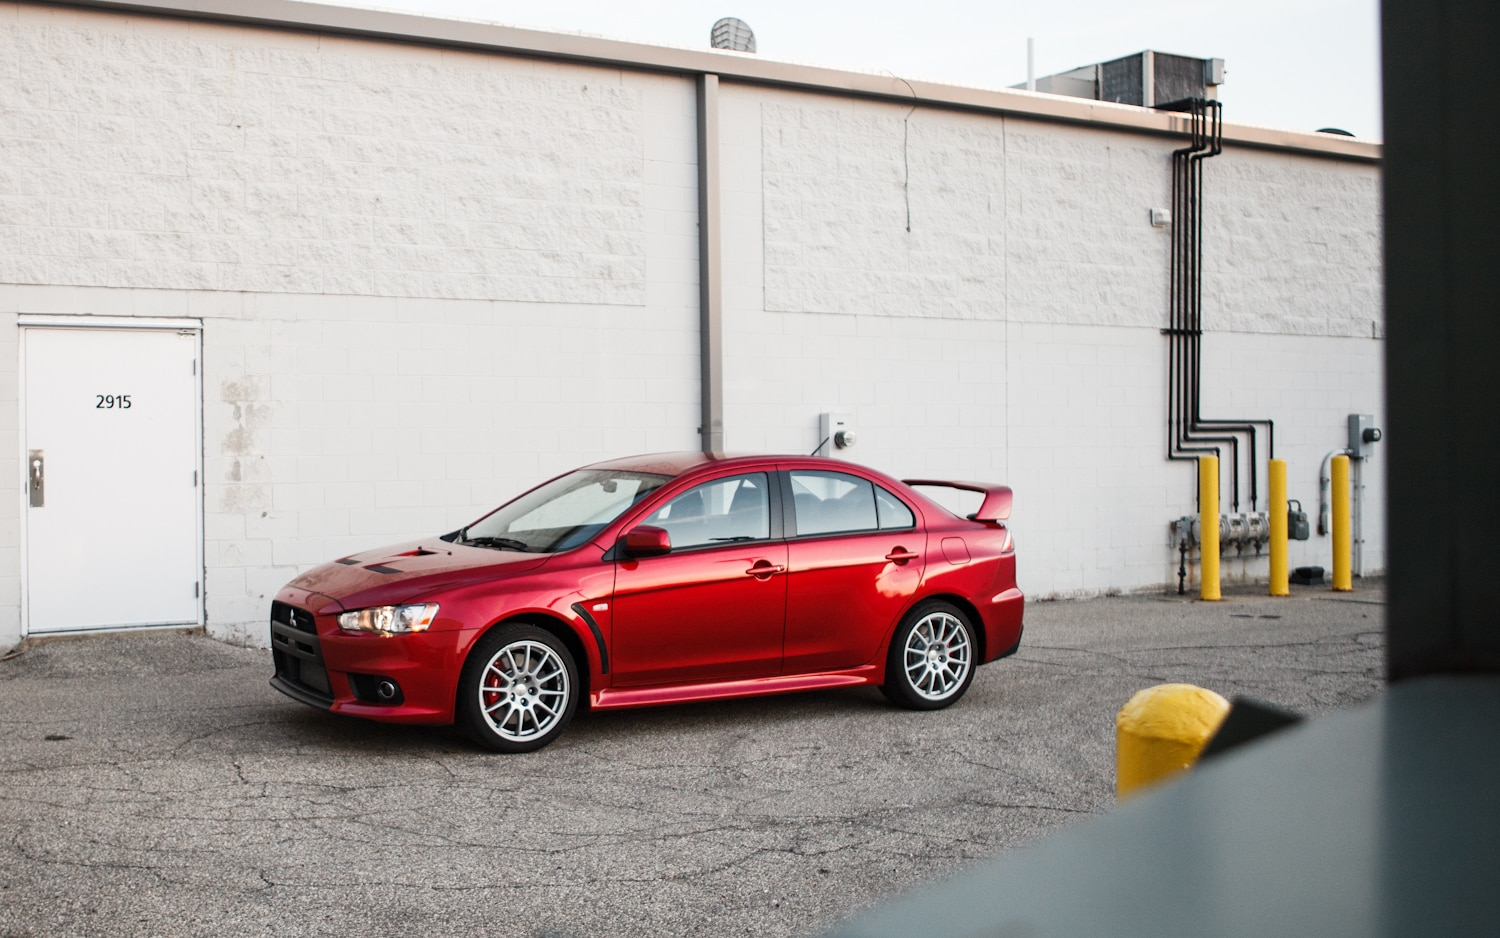 2013 Mitsubishi Lancer Evolution GSR Front Left Side View 21